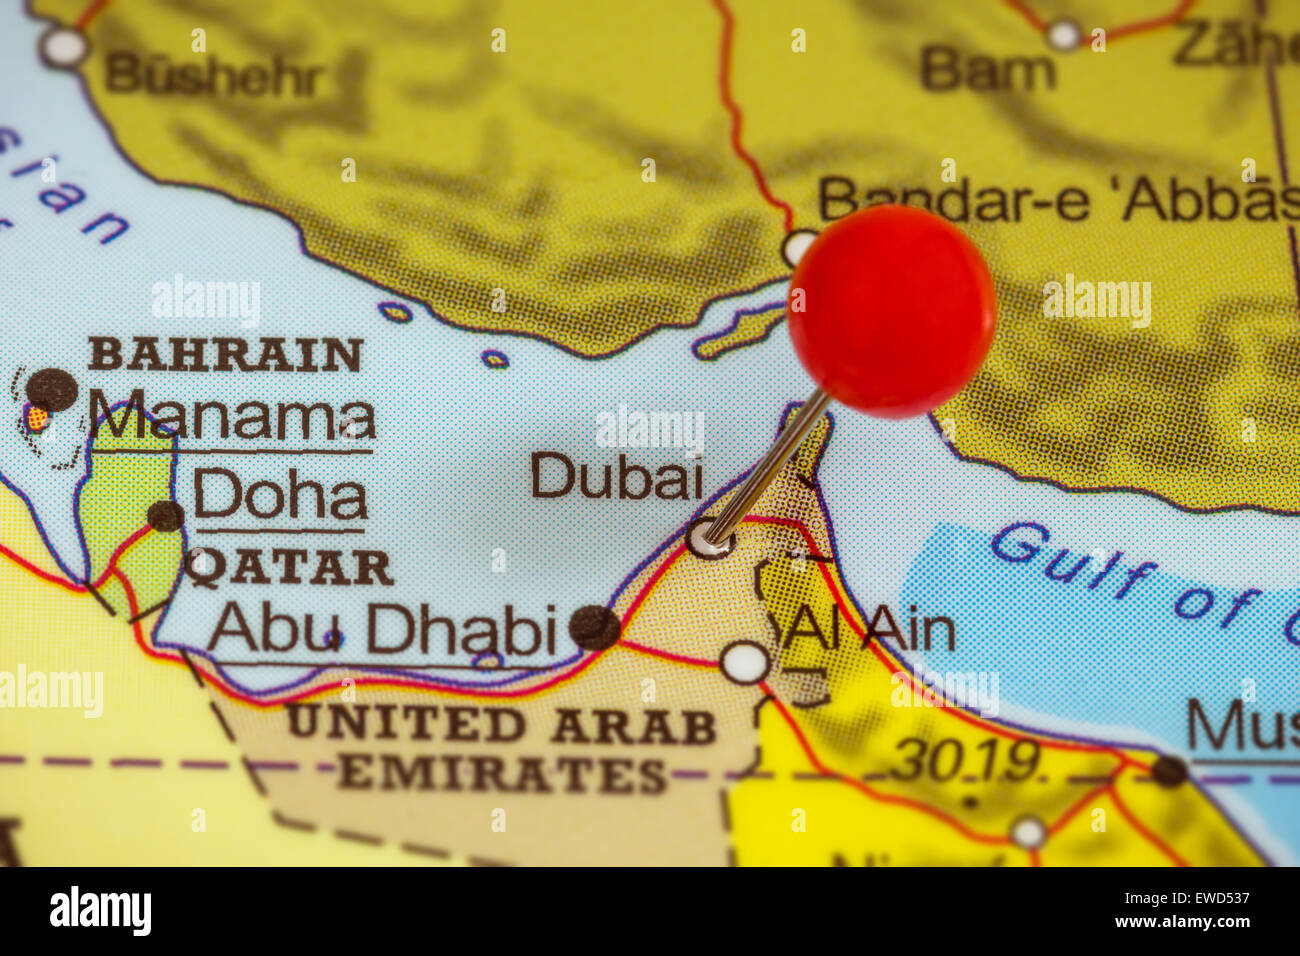 Dubai map stock photos dubai map stock images alamy close up of a red pushpin on a map of dubai united arab emirates gumiabroncs Image collections